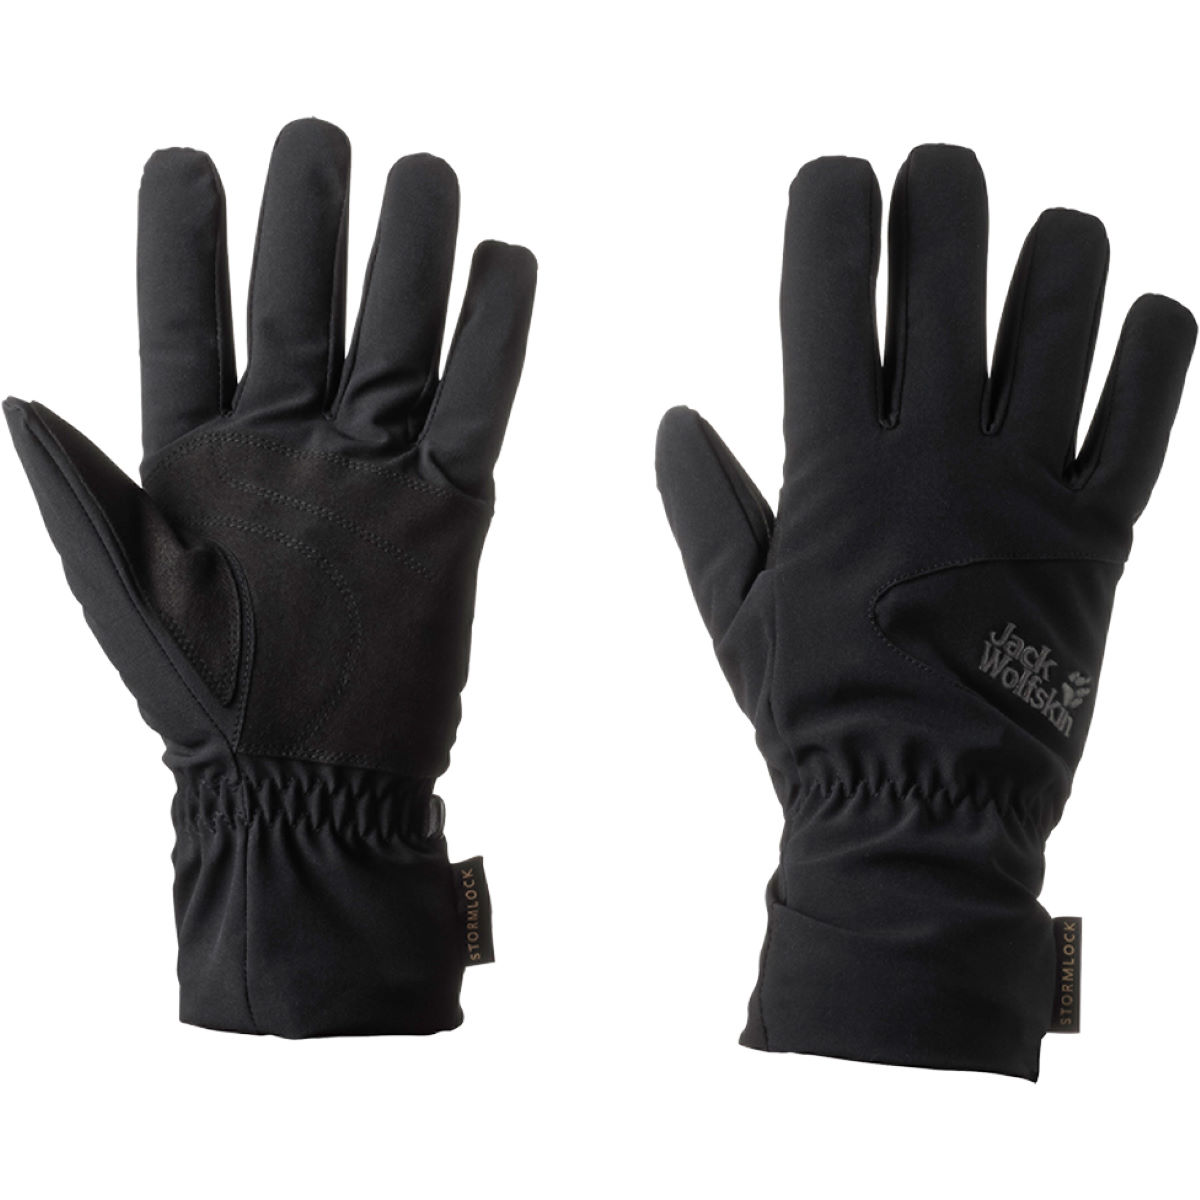 Image of Gants Jack Wolfskin Stormlock Highloft - Extra Large Noir | Gants